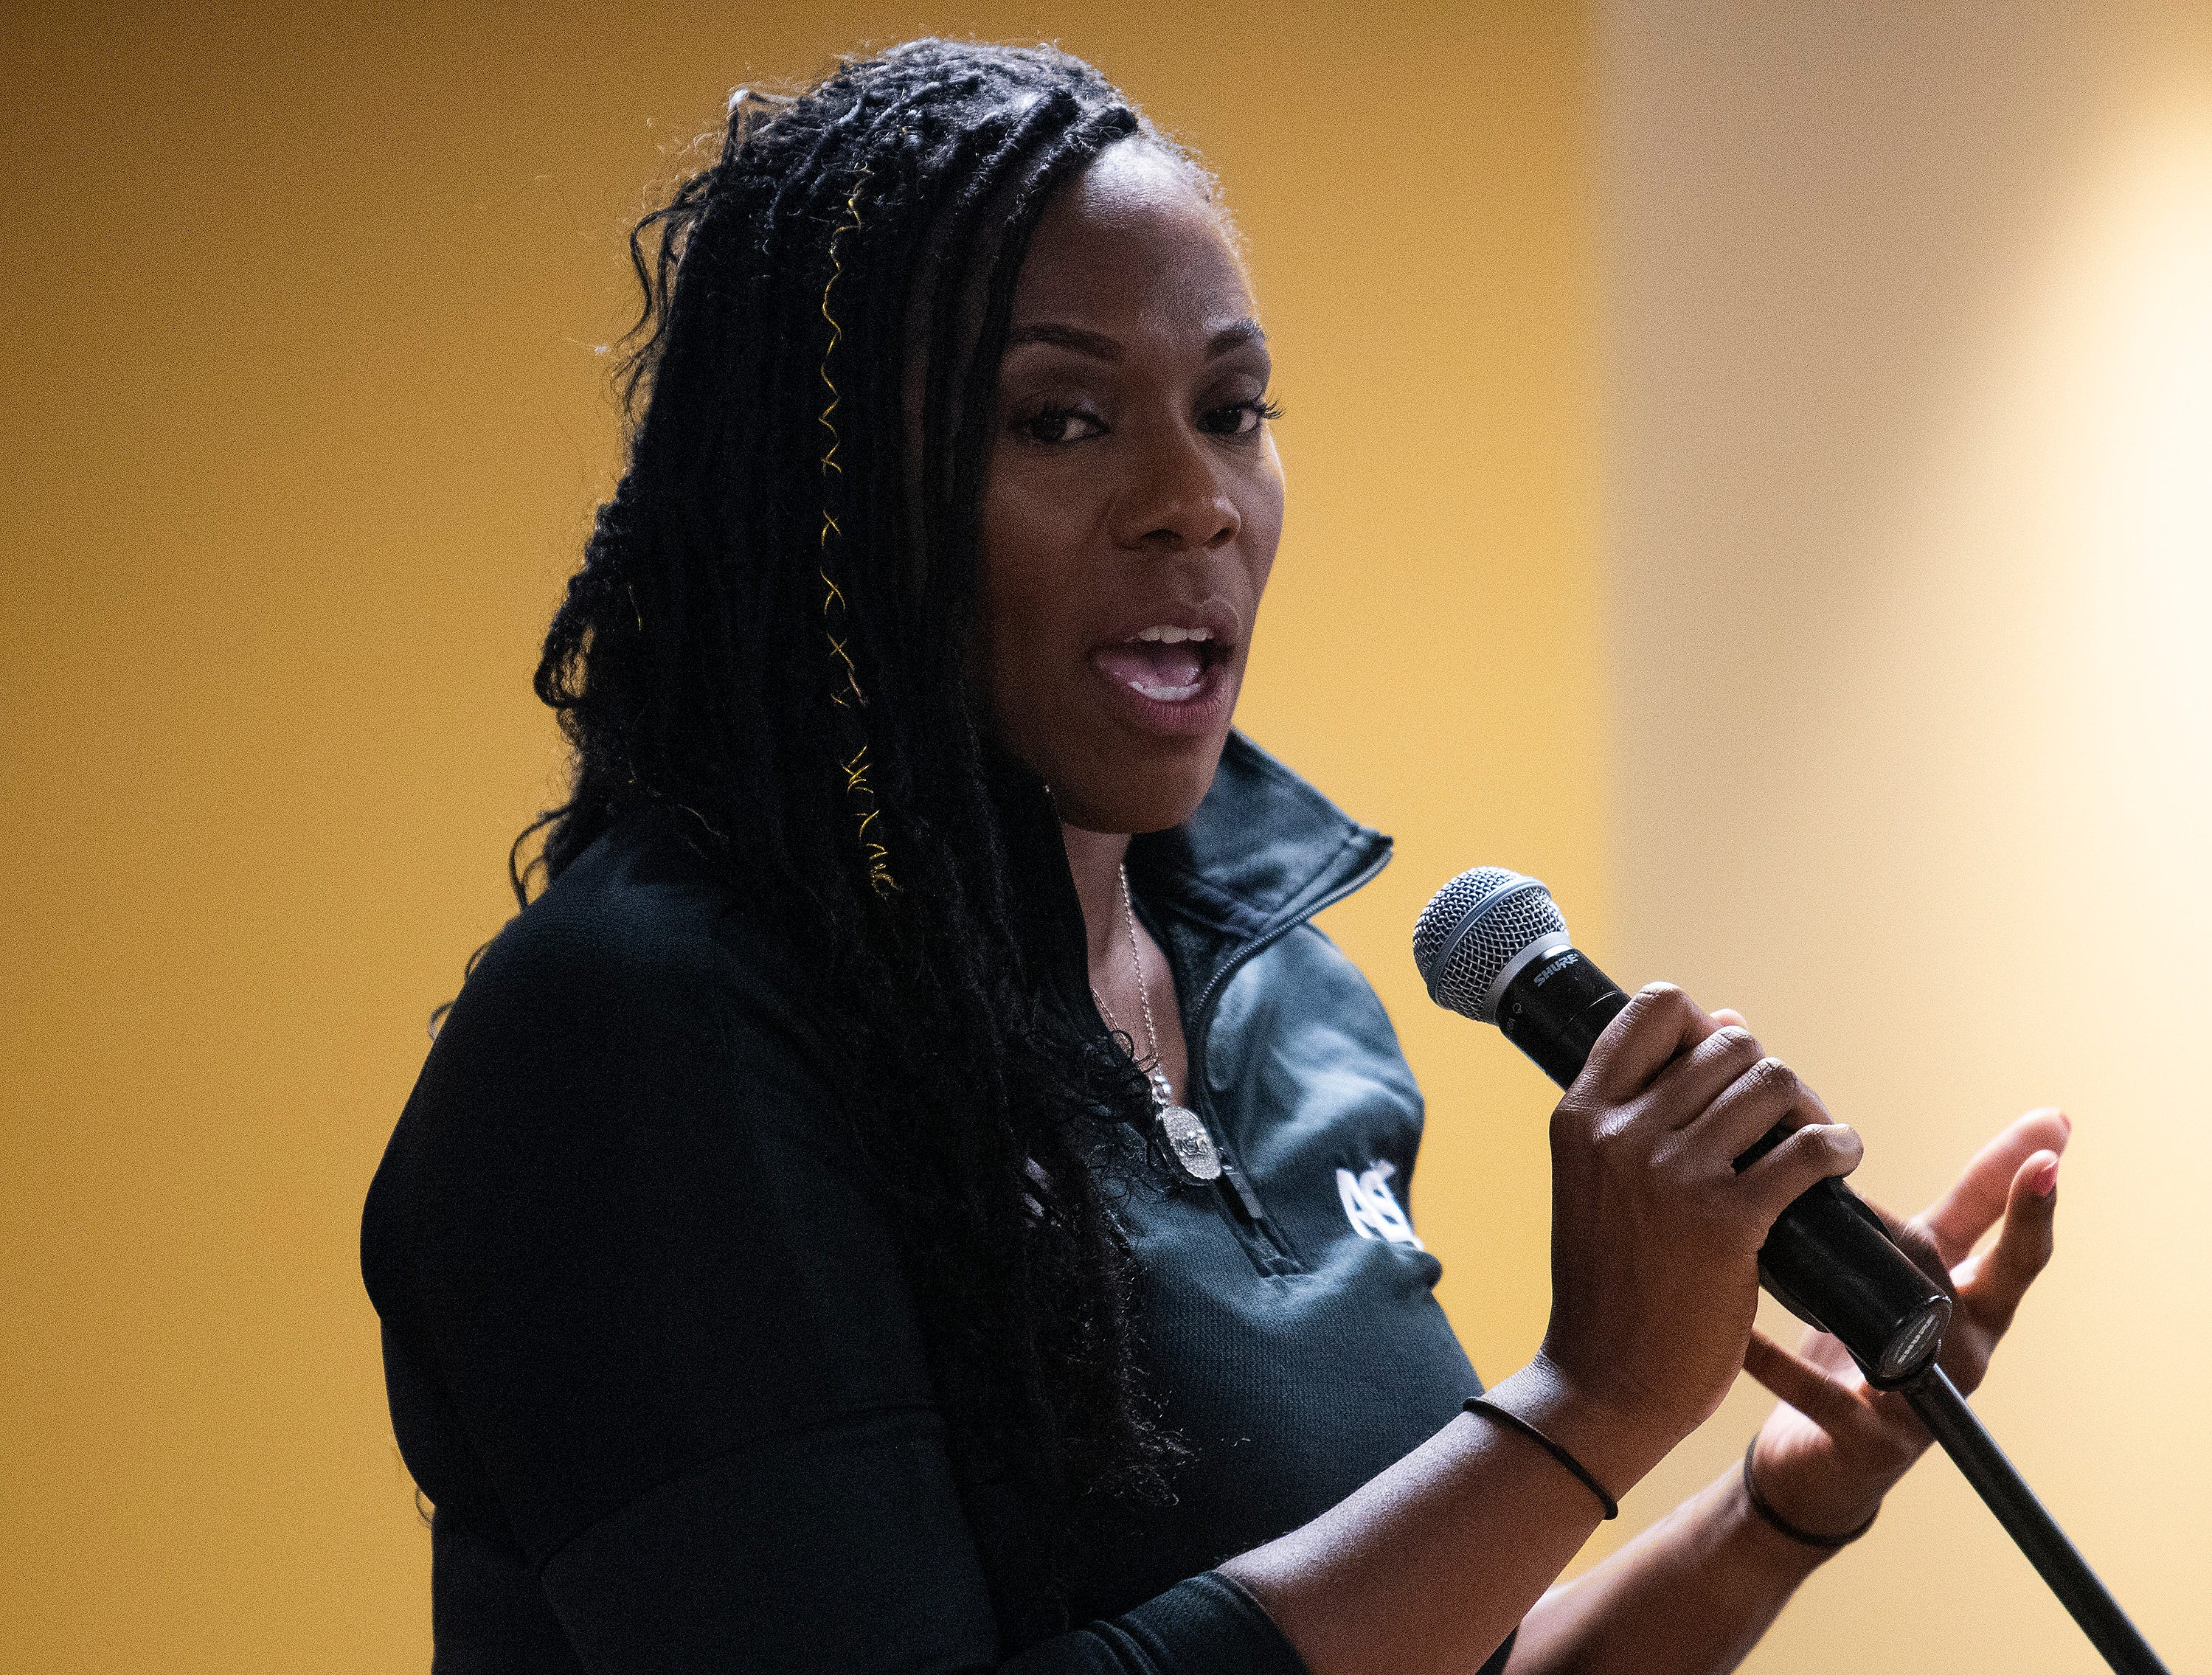 Alabama State University Athletic Director Jennifer Lynne Williams speaks at the ASU Softball team watch party, on the ASU campus in Montgomery, Ala., on Sunday evening May 12, 2019, to see where they will play in the NCAA Softball Tournament. ASU plays Alabama in Tuscaloosa.